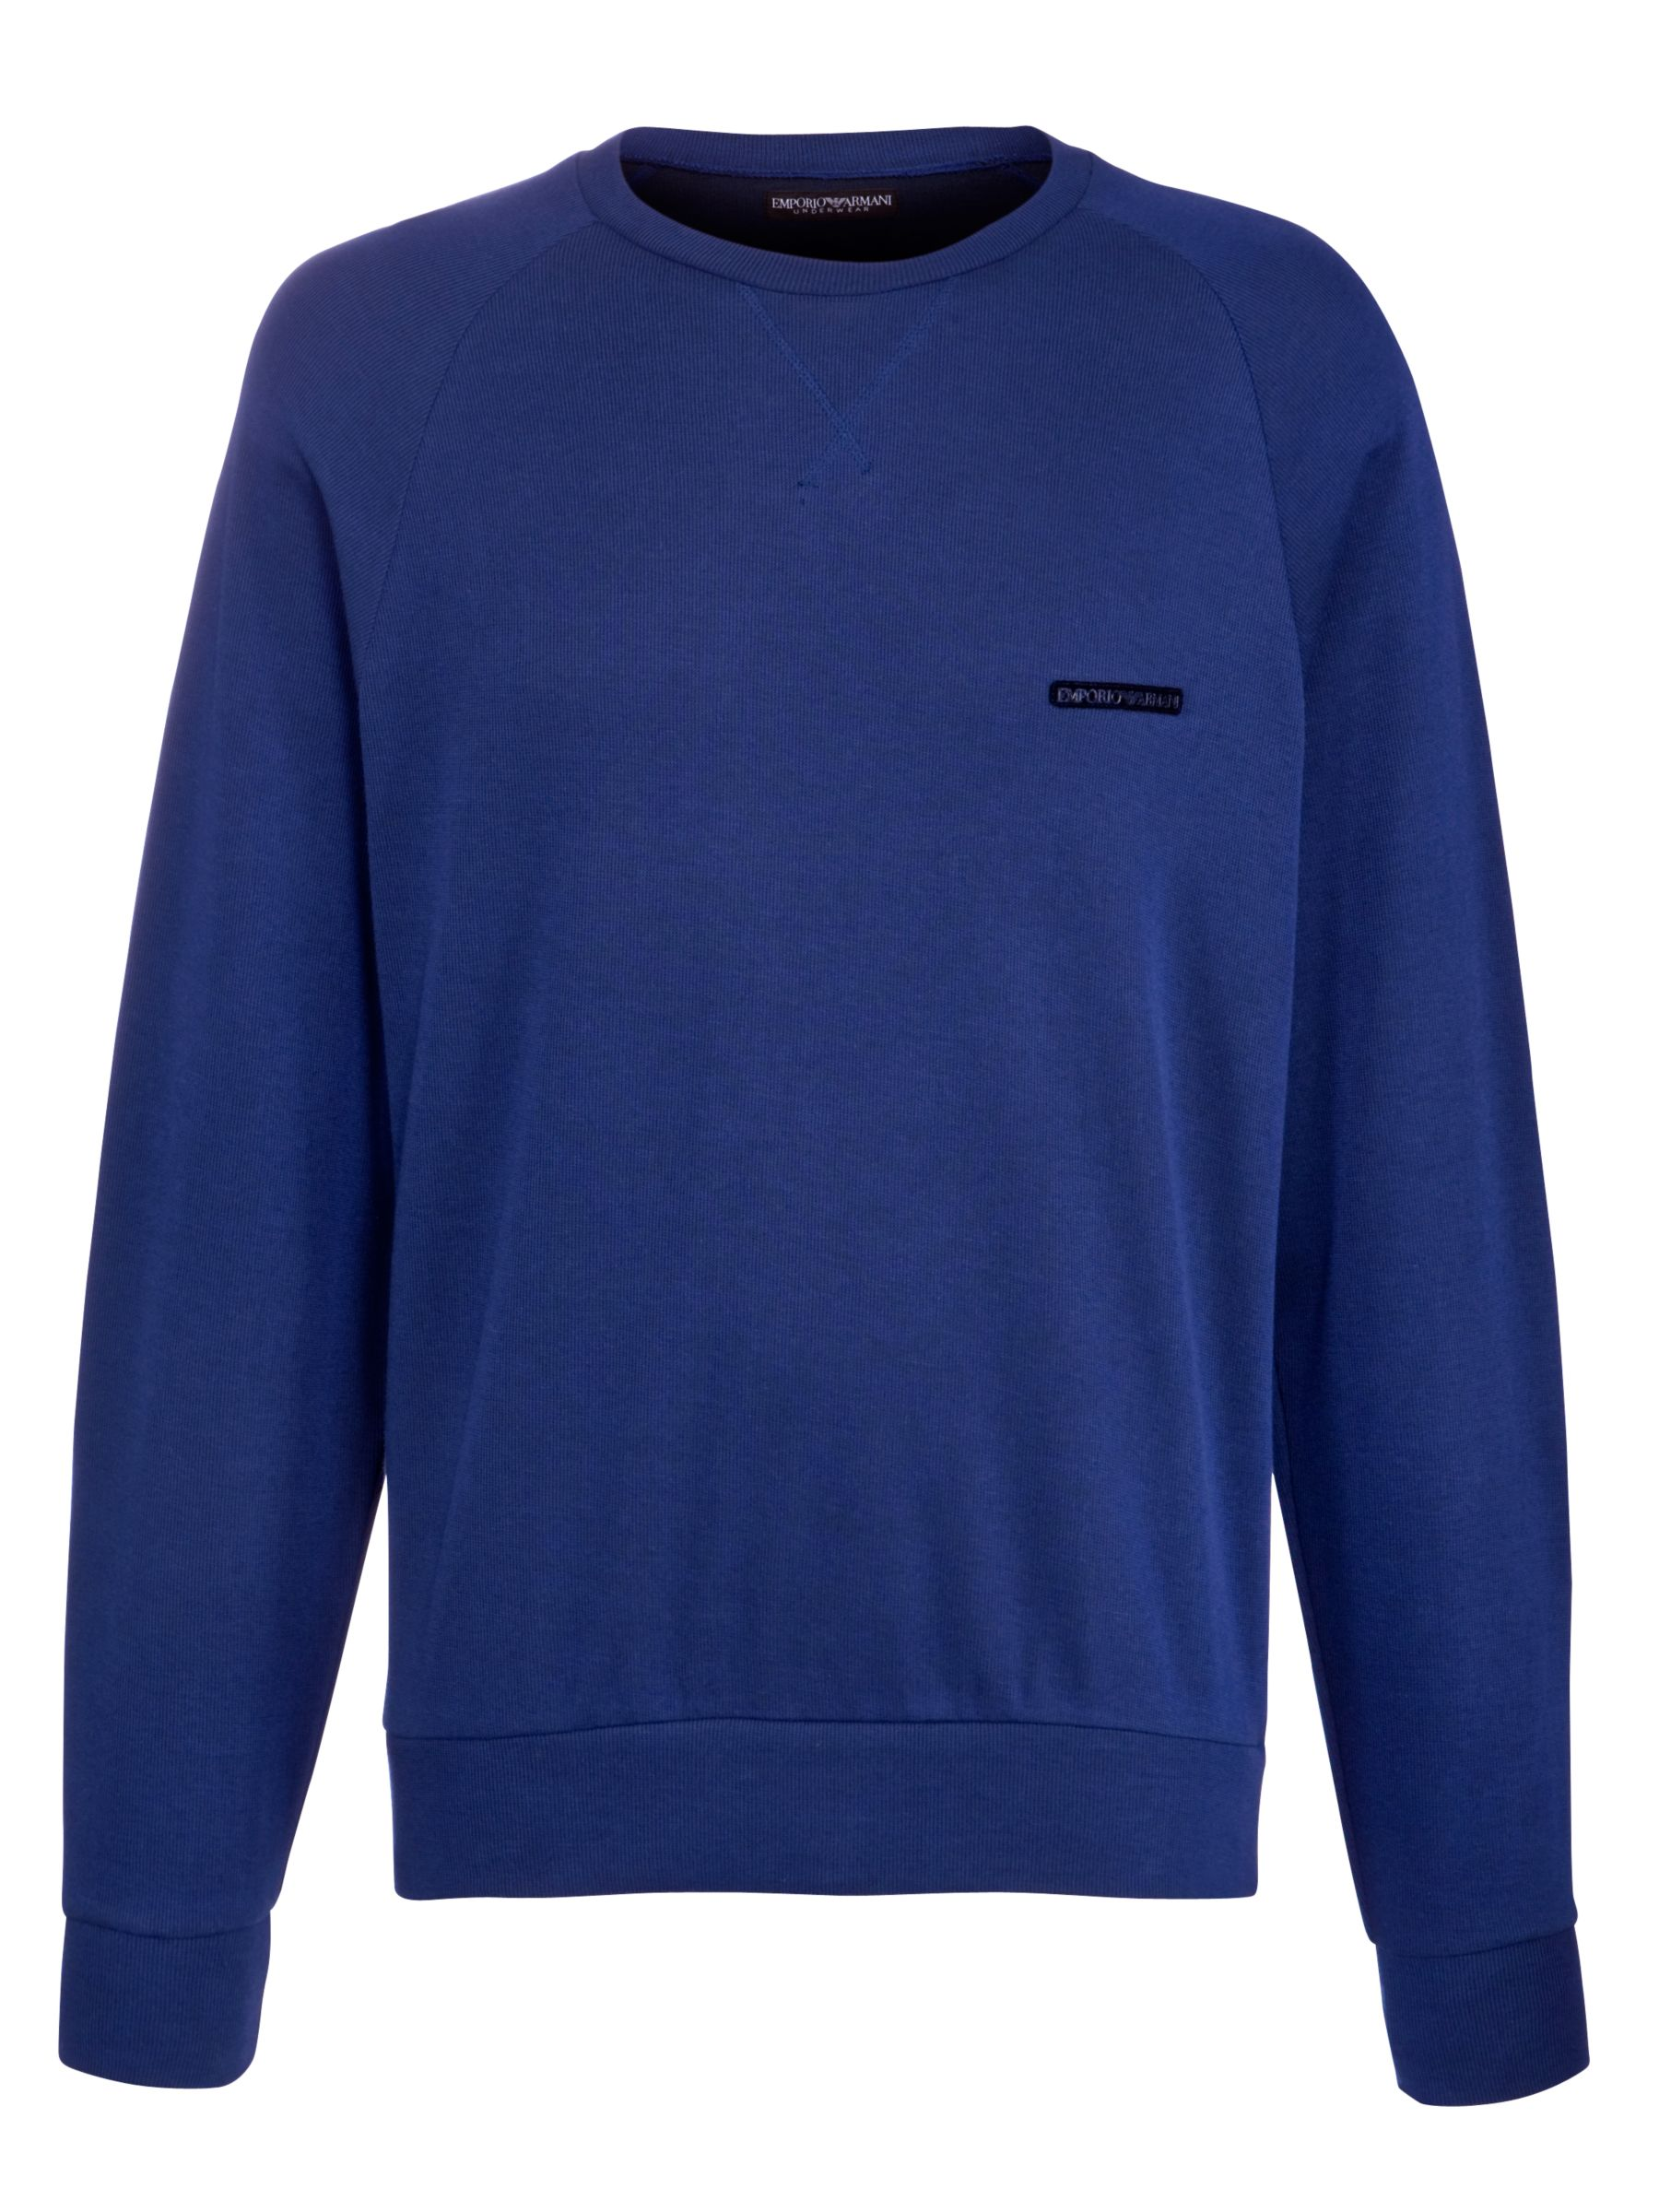 Emporio Armani Crew Neck Long Sleeve T-Shirt